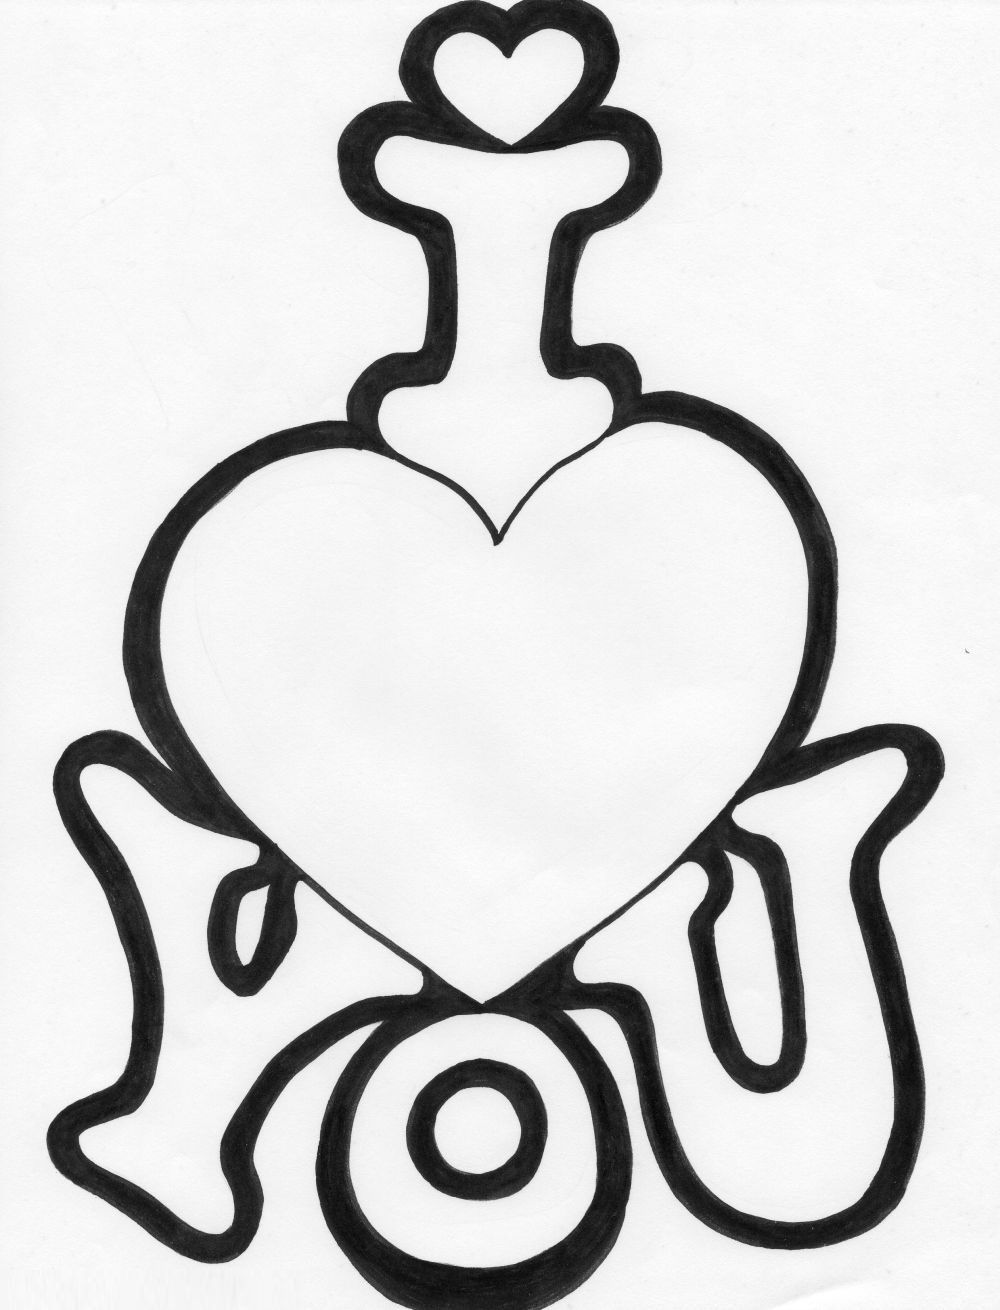 Coloring pages for mom - I Love You Mom Free Coloring Pages On Masivy World